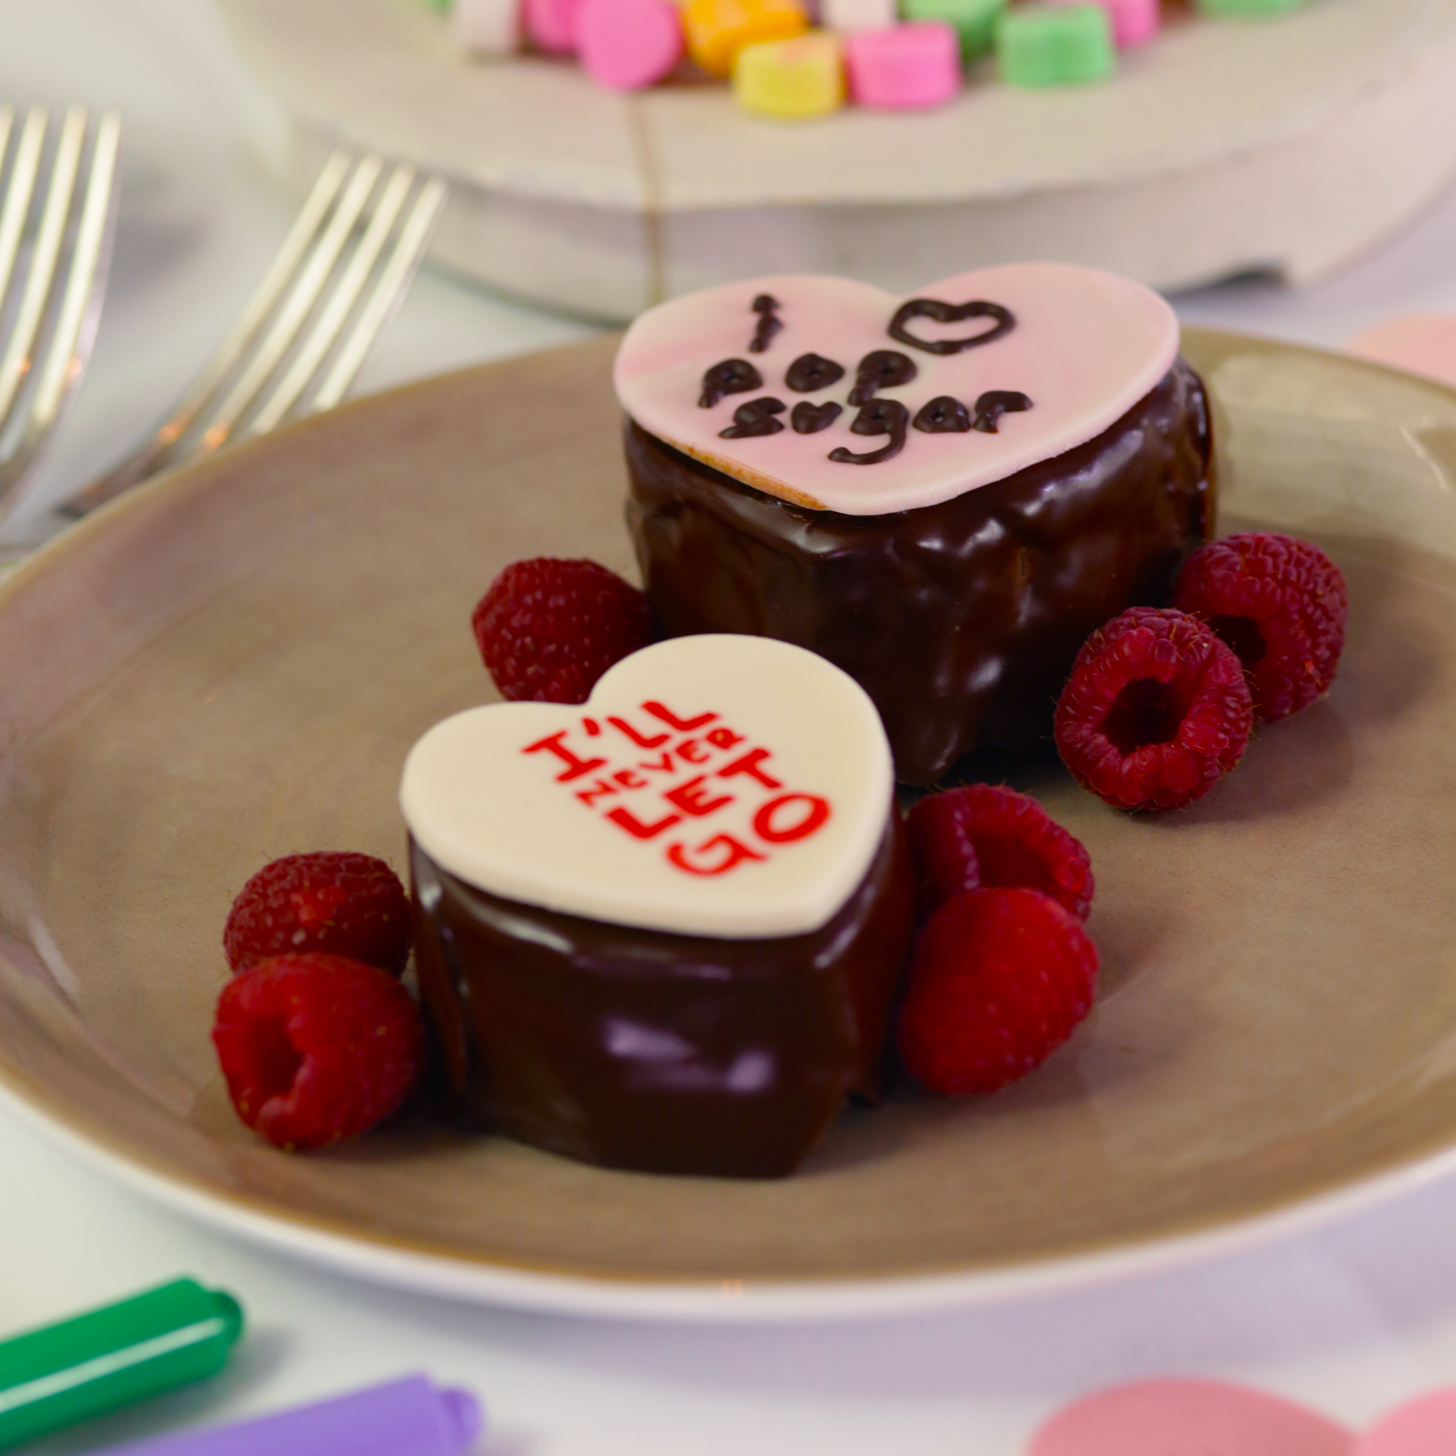 Conversation Heart Chocolate Cakes Recipe | POPSUGAR Food